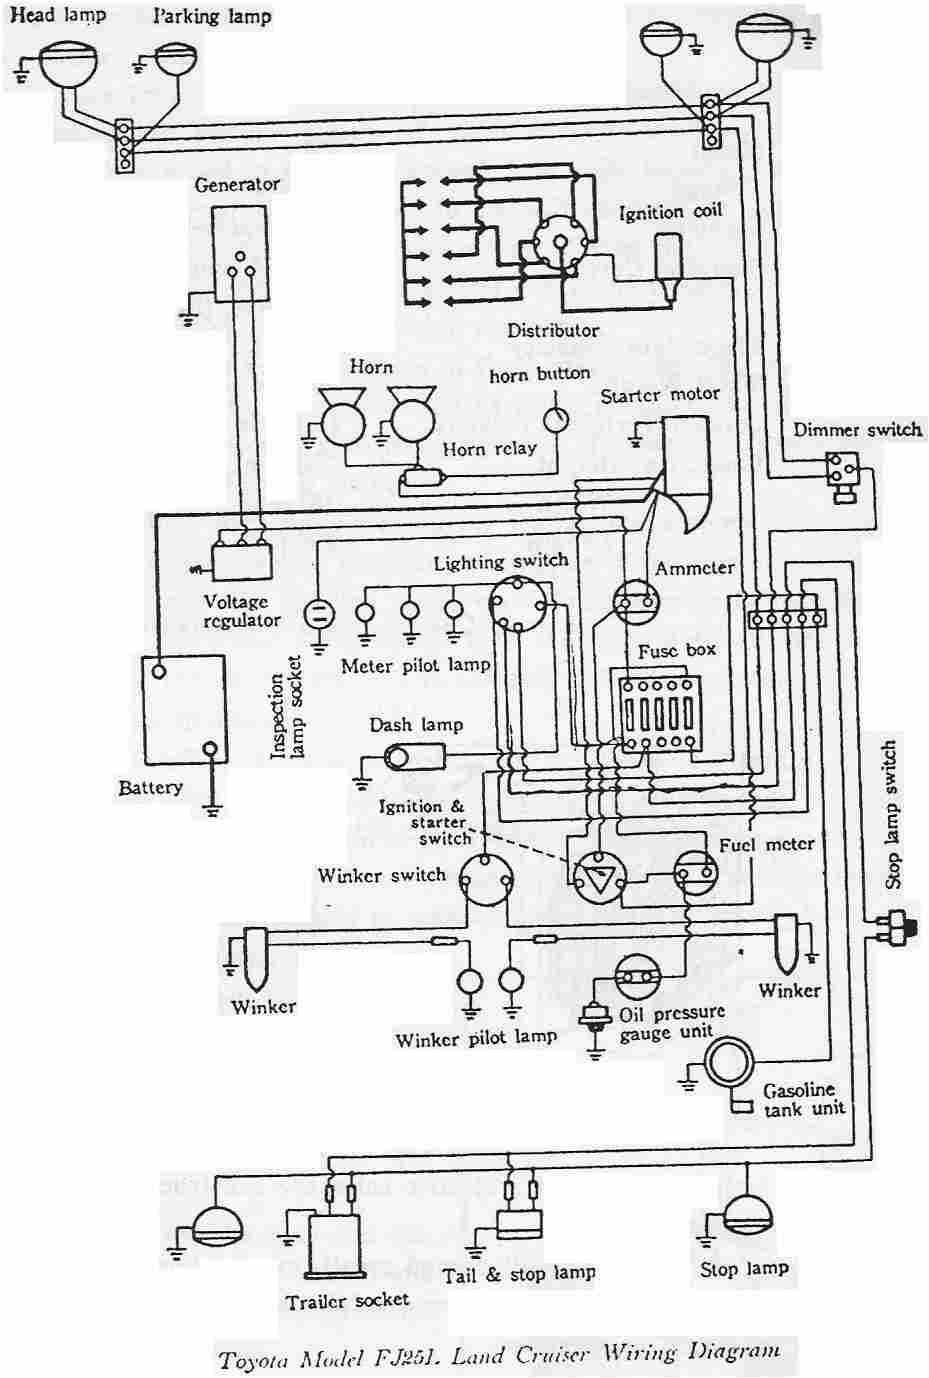 system 2000 audio system wiring diagram troubleshooting page